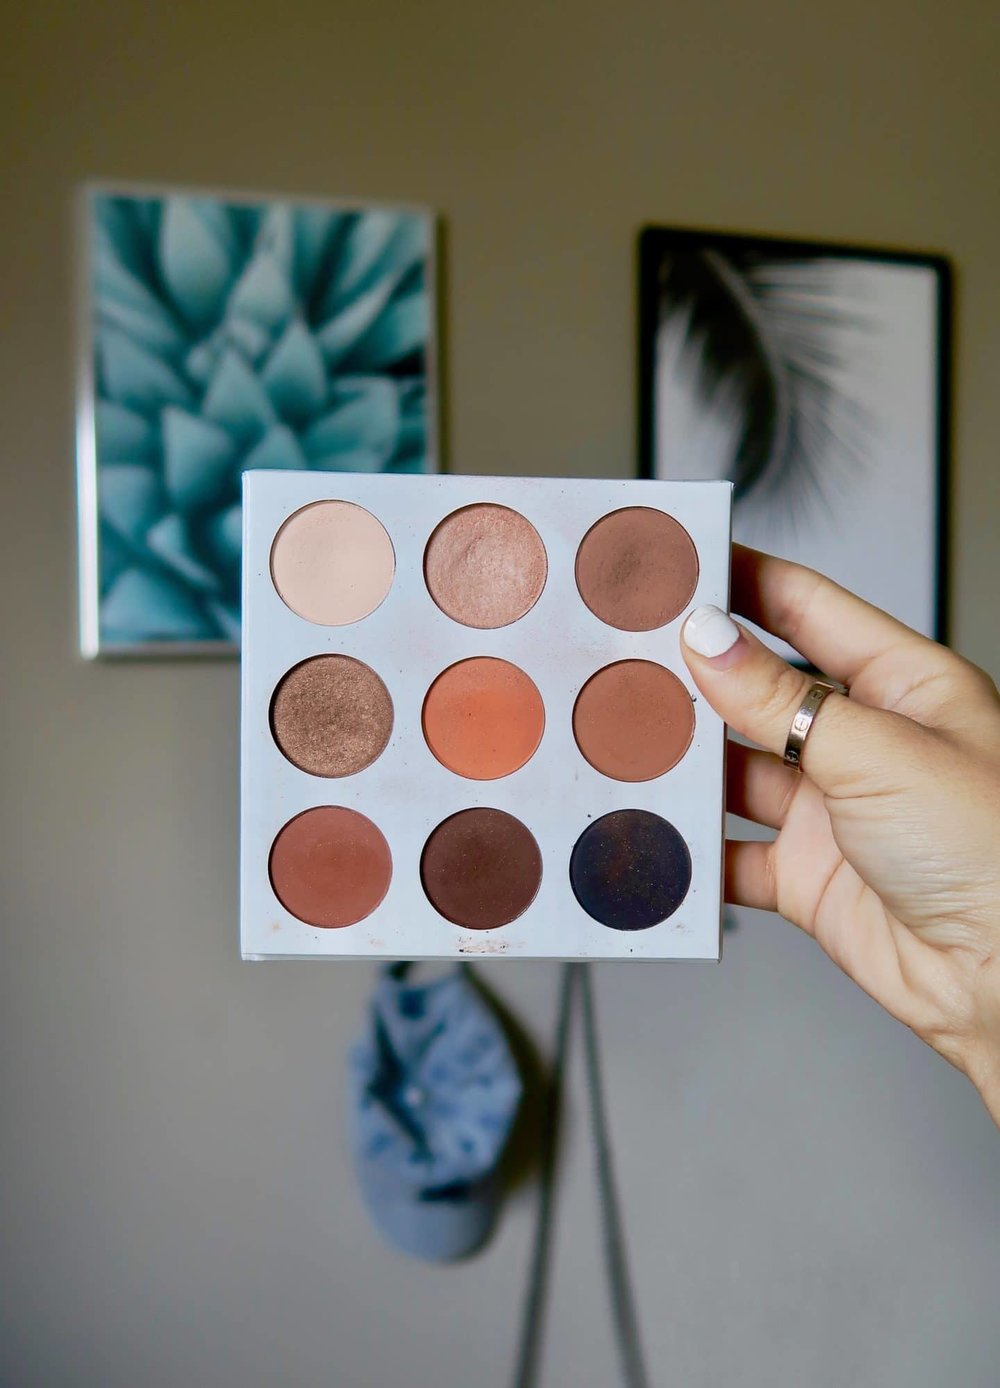 When I first got this palette, I was OBSESSED. - I've always been more of a cool-toned brown kinda girl and this palette is definitely on the warmer end, which was an adjustment for me at first. It has 9 beautiful shades and I used it consistently for the first couple months of owning it. I recently picked it back up after watching a gorgeous makeup tutorial, and I'm re-obsessed with it.I've never been a professional makeup artist, nor will I ever be… but I've discovered a new love for a good blending shade. There is a bright orange color in this palette that I NEVER got near, mostly because I was intimidated. Turns out that it actually doesn't look crazy when you apply it and it creates a really nice blended look at the end! Therefore, I highly recommend you guys try something a little more bold next time you're playing around with makeup. Maybe you'll end up loving what you end up with!